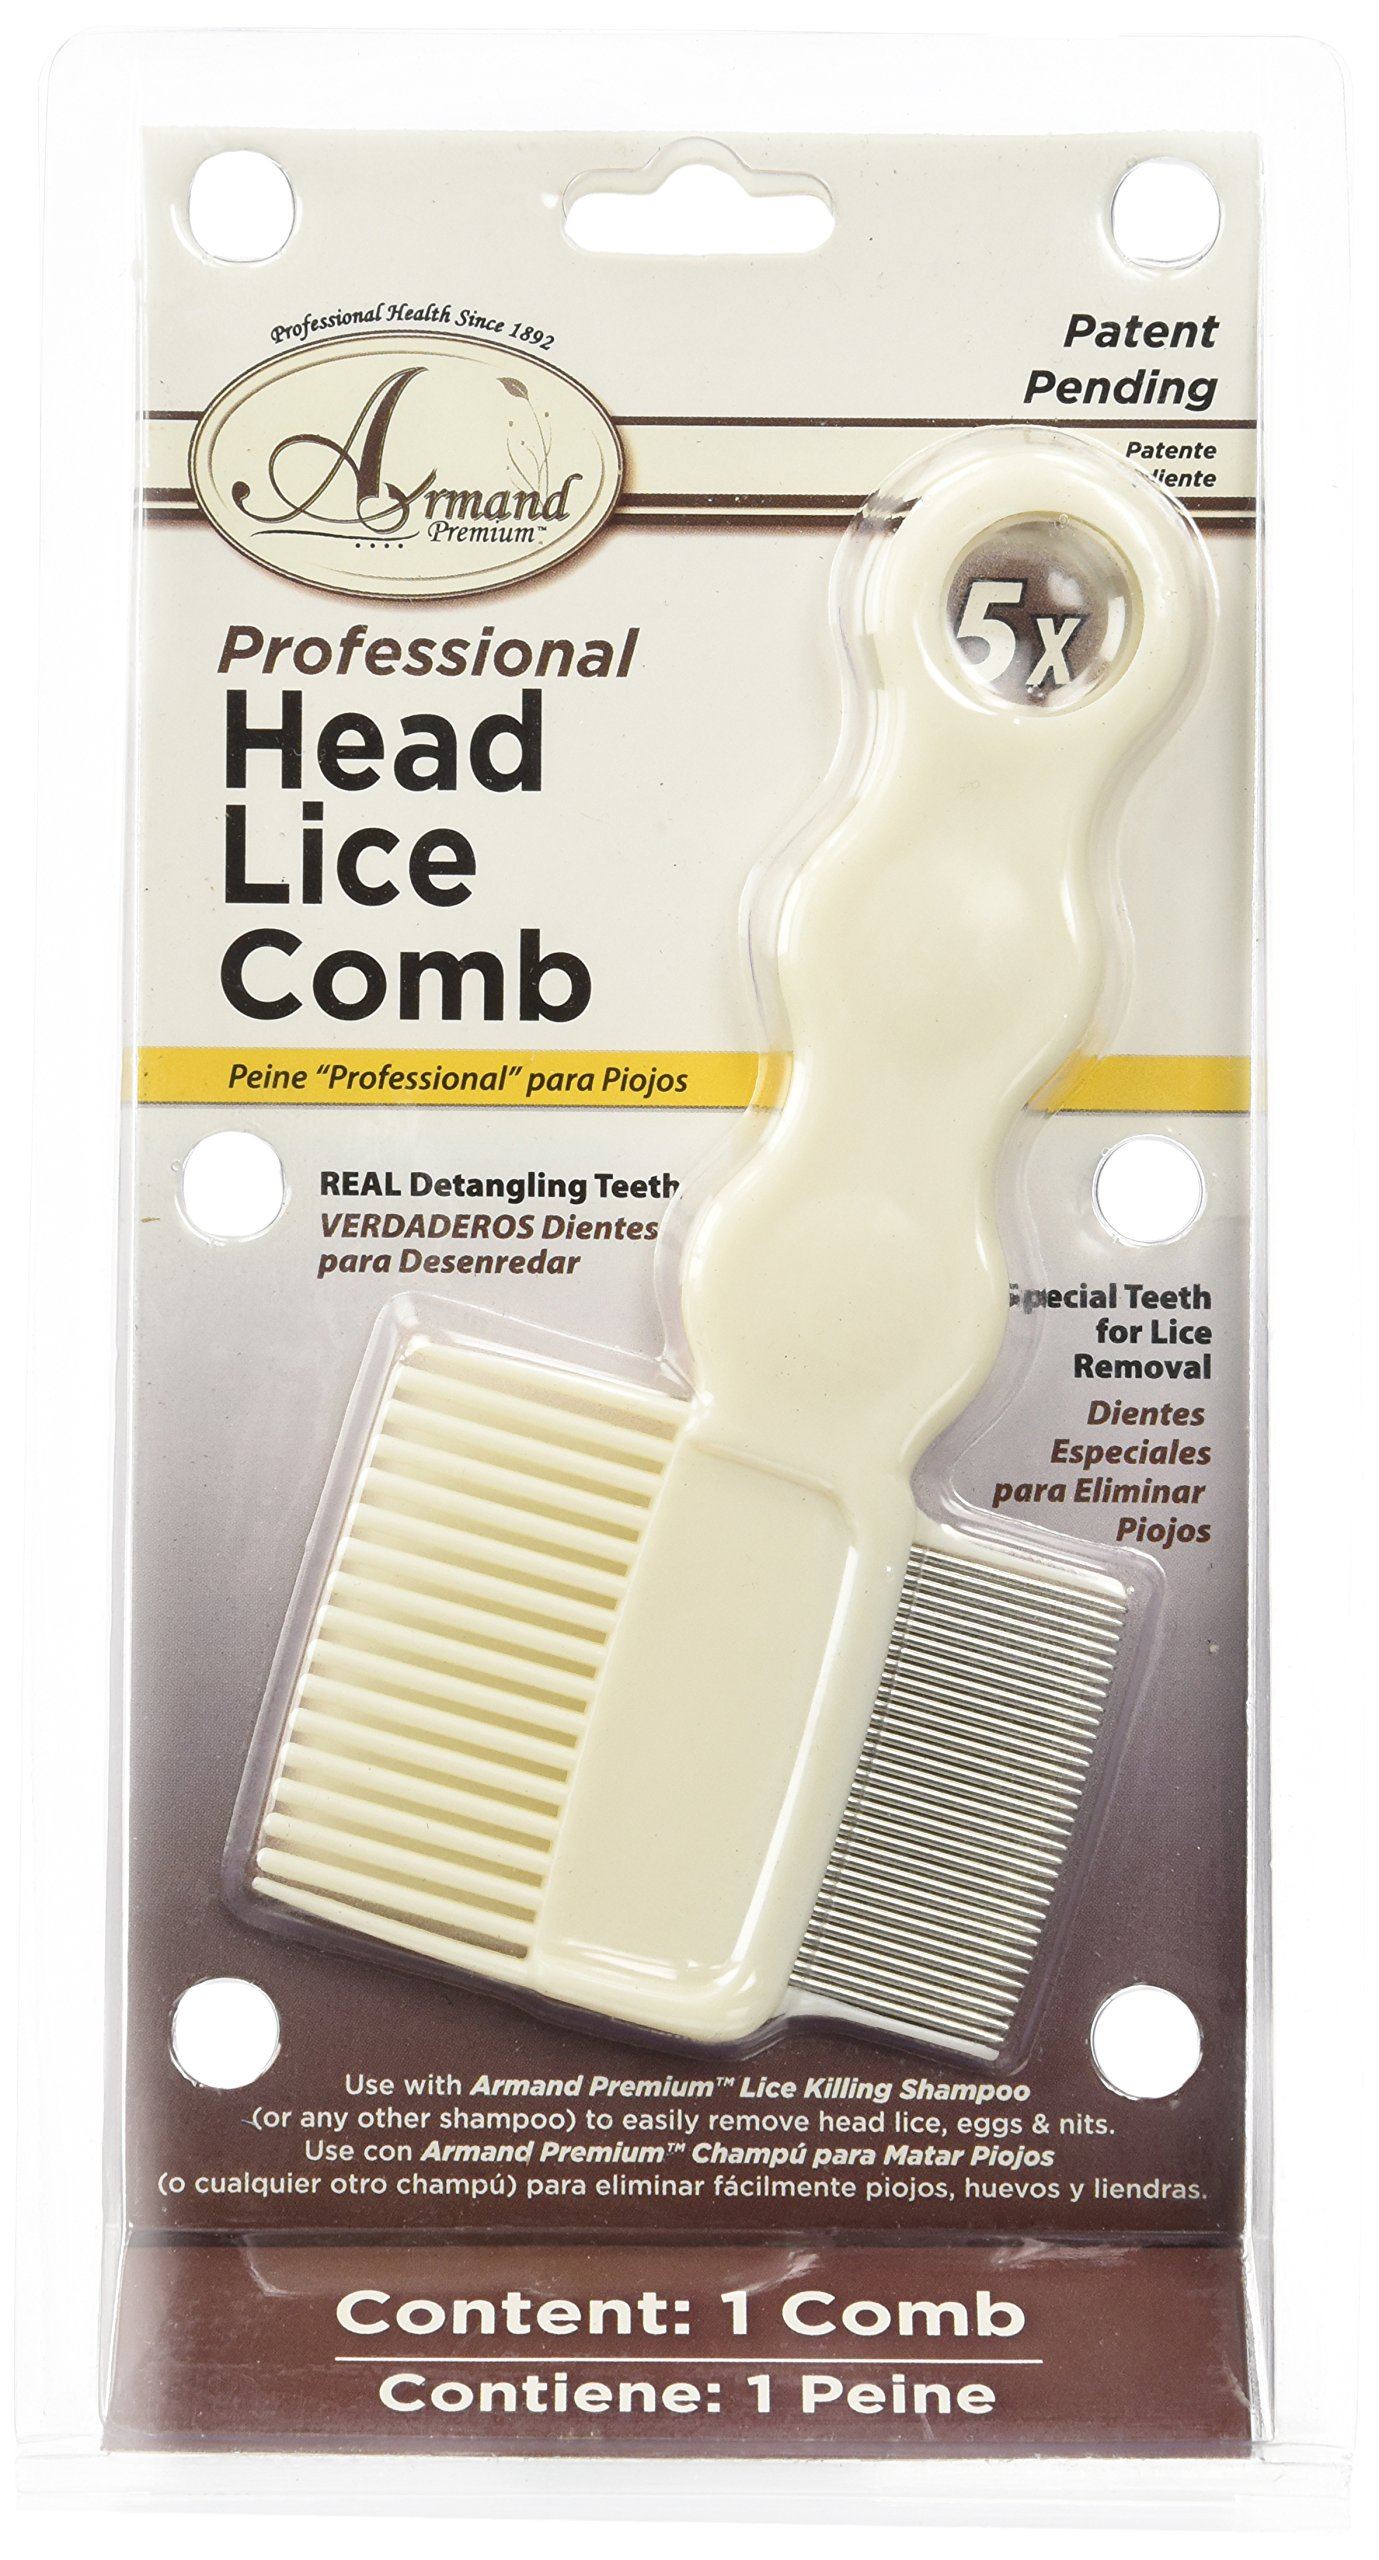 #1 Lice Comb with 5x magnifying glass -- featuring professional head lice comb patent pending -- ideal for detangling knots from thick or thin hair